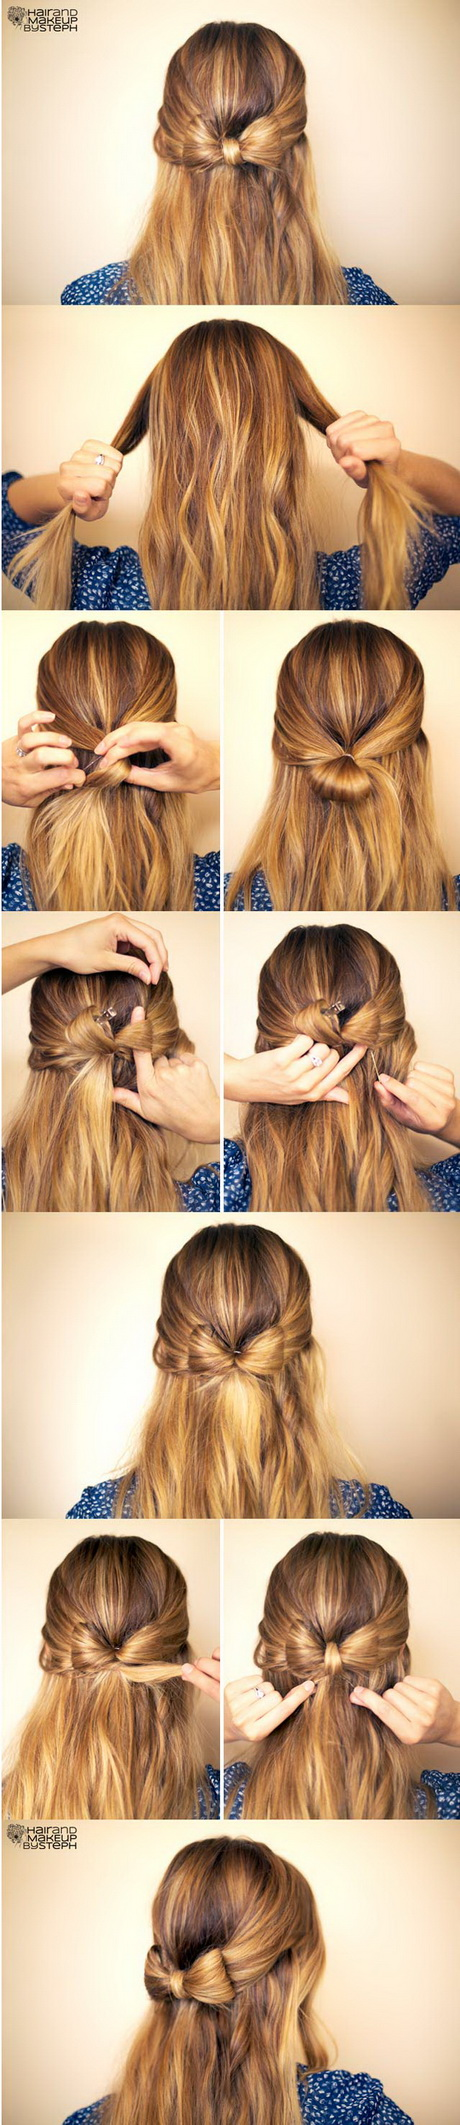 Easy step by step hairstyles for long hair